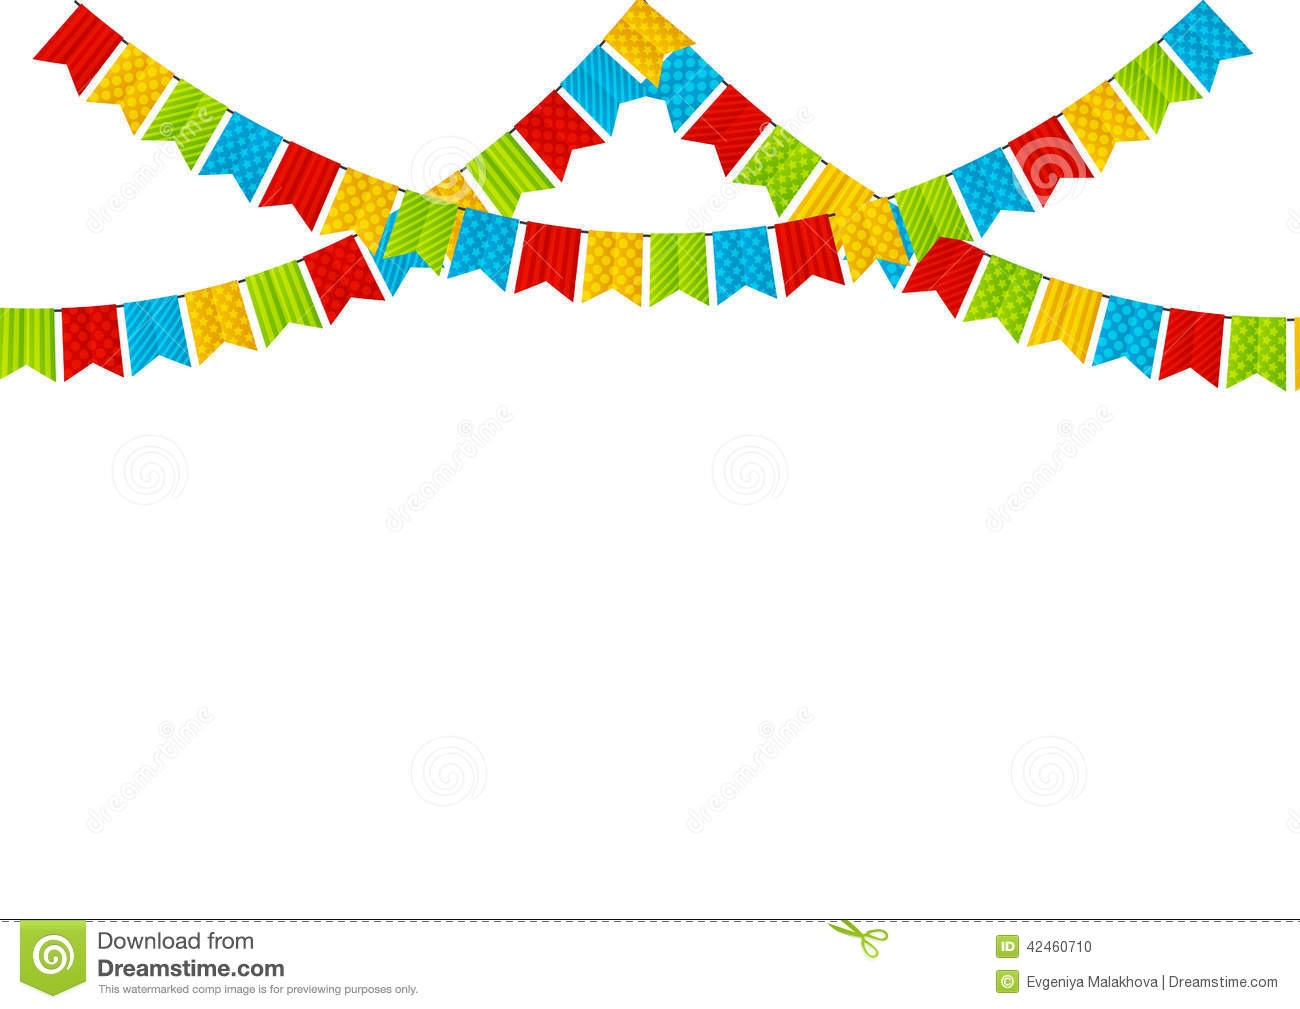 Party flag clipart clip art black and white library Triangle Flag Banner Clipart | Free download best Triangle ... clip art black and white library